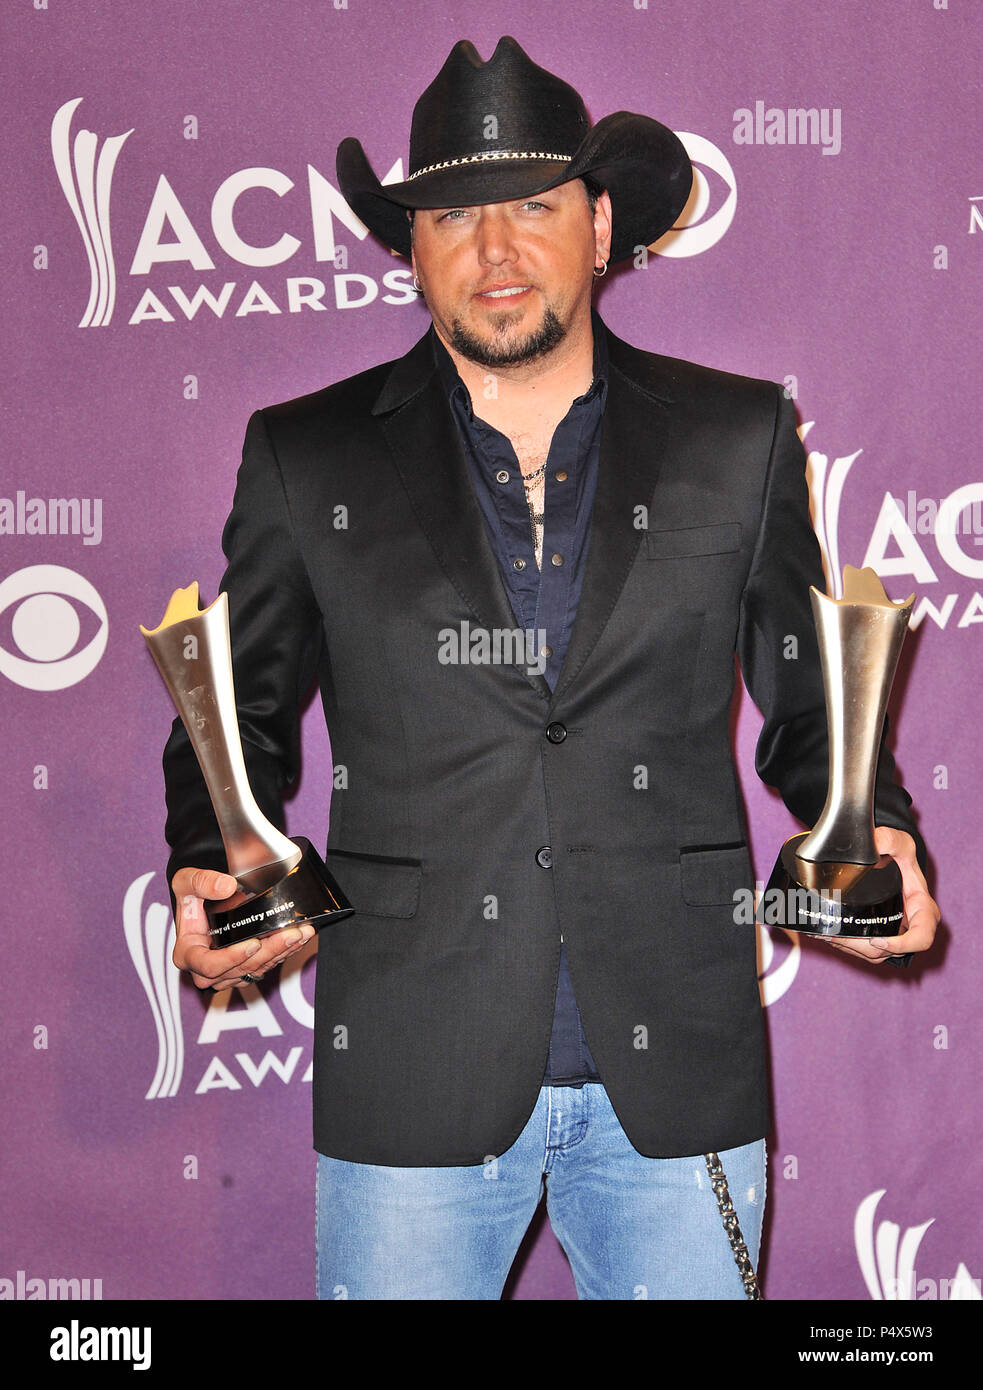 51d2ada4a3a30 a Jason Aldeen at the Country Music Awards 2013 at the MGM Grand Arena in  Las Vegas